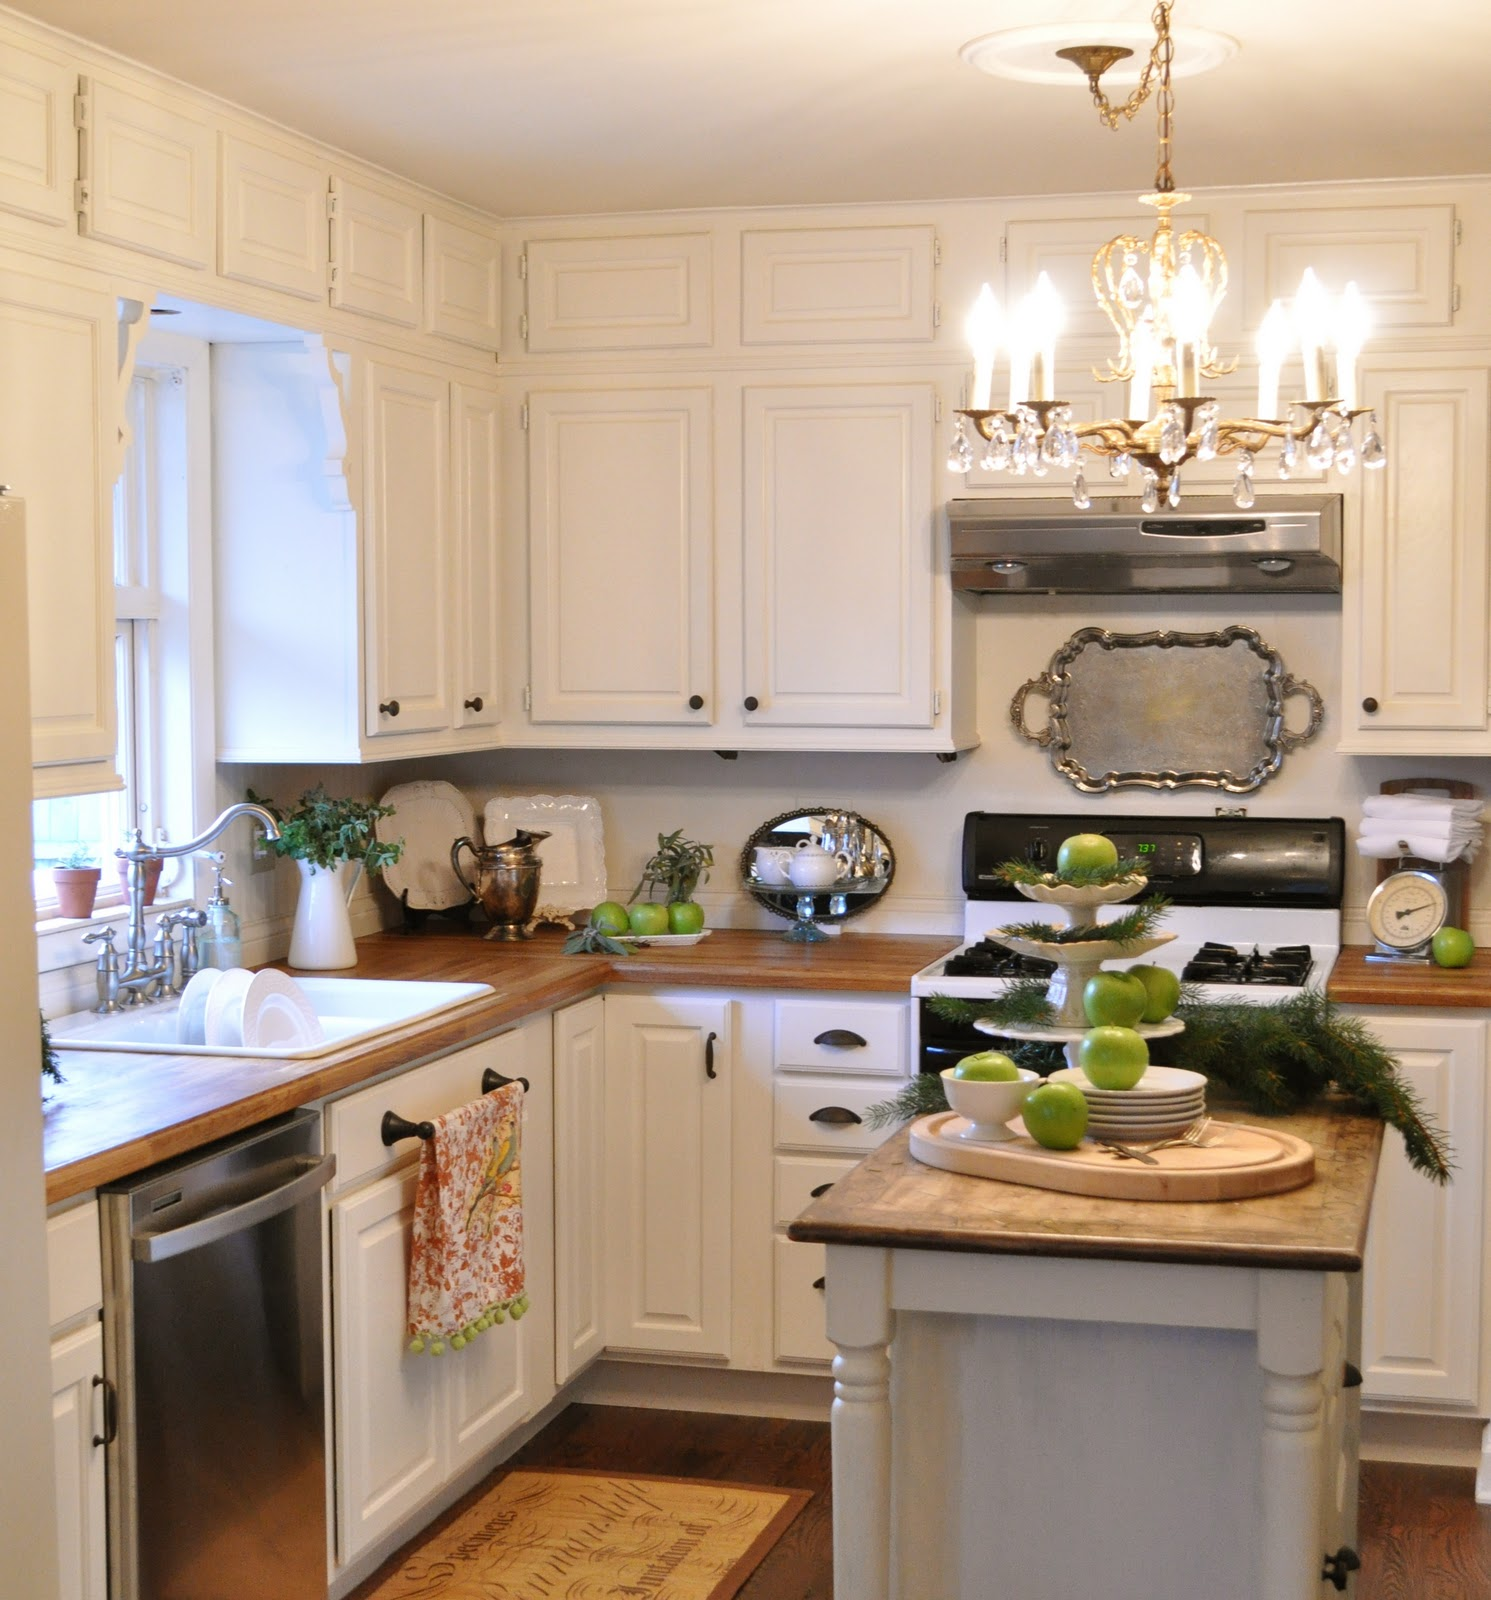 Remodel Kitchen With White Cabinets: My Complete Kitchen Remodel Story For About $12,000